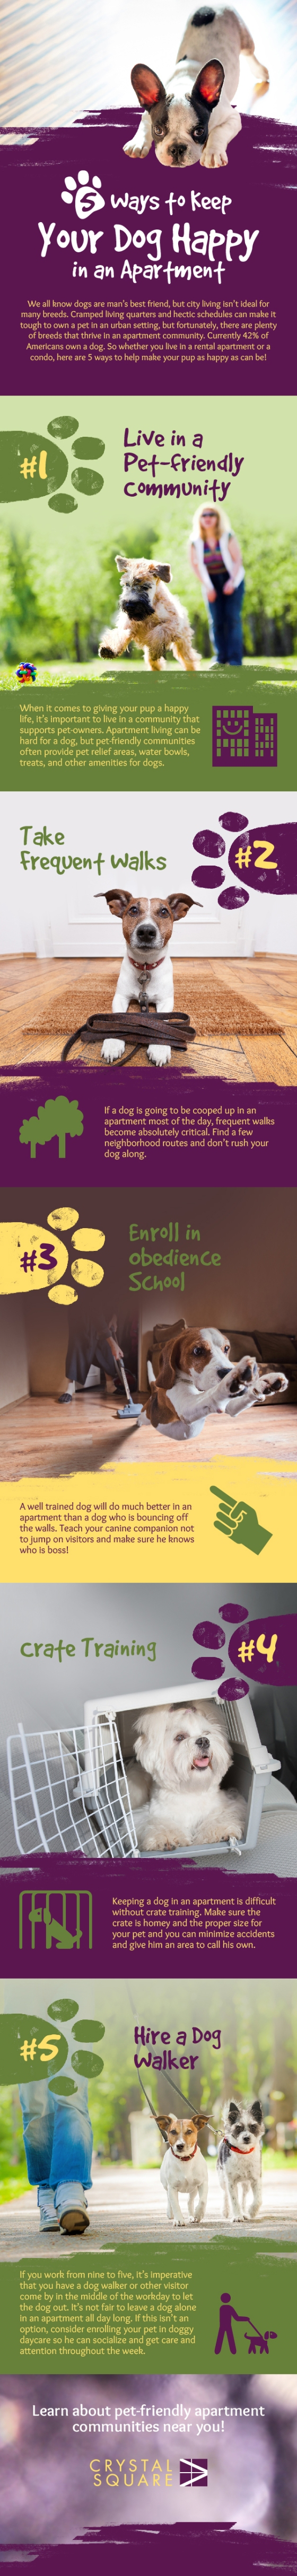 Infographic : Pet Lovers: How To Keep Your Dog Happy In The Apartment